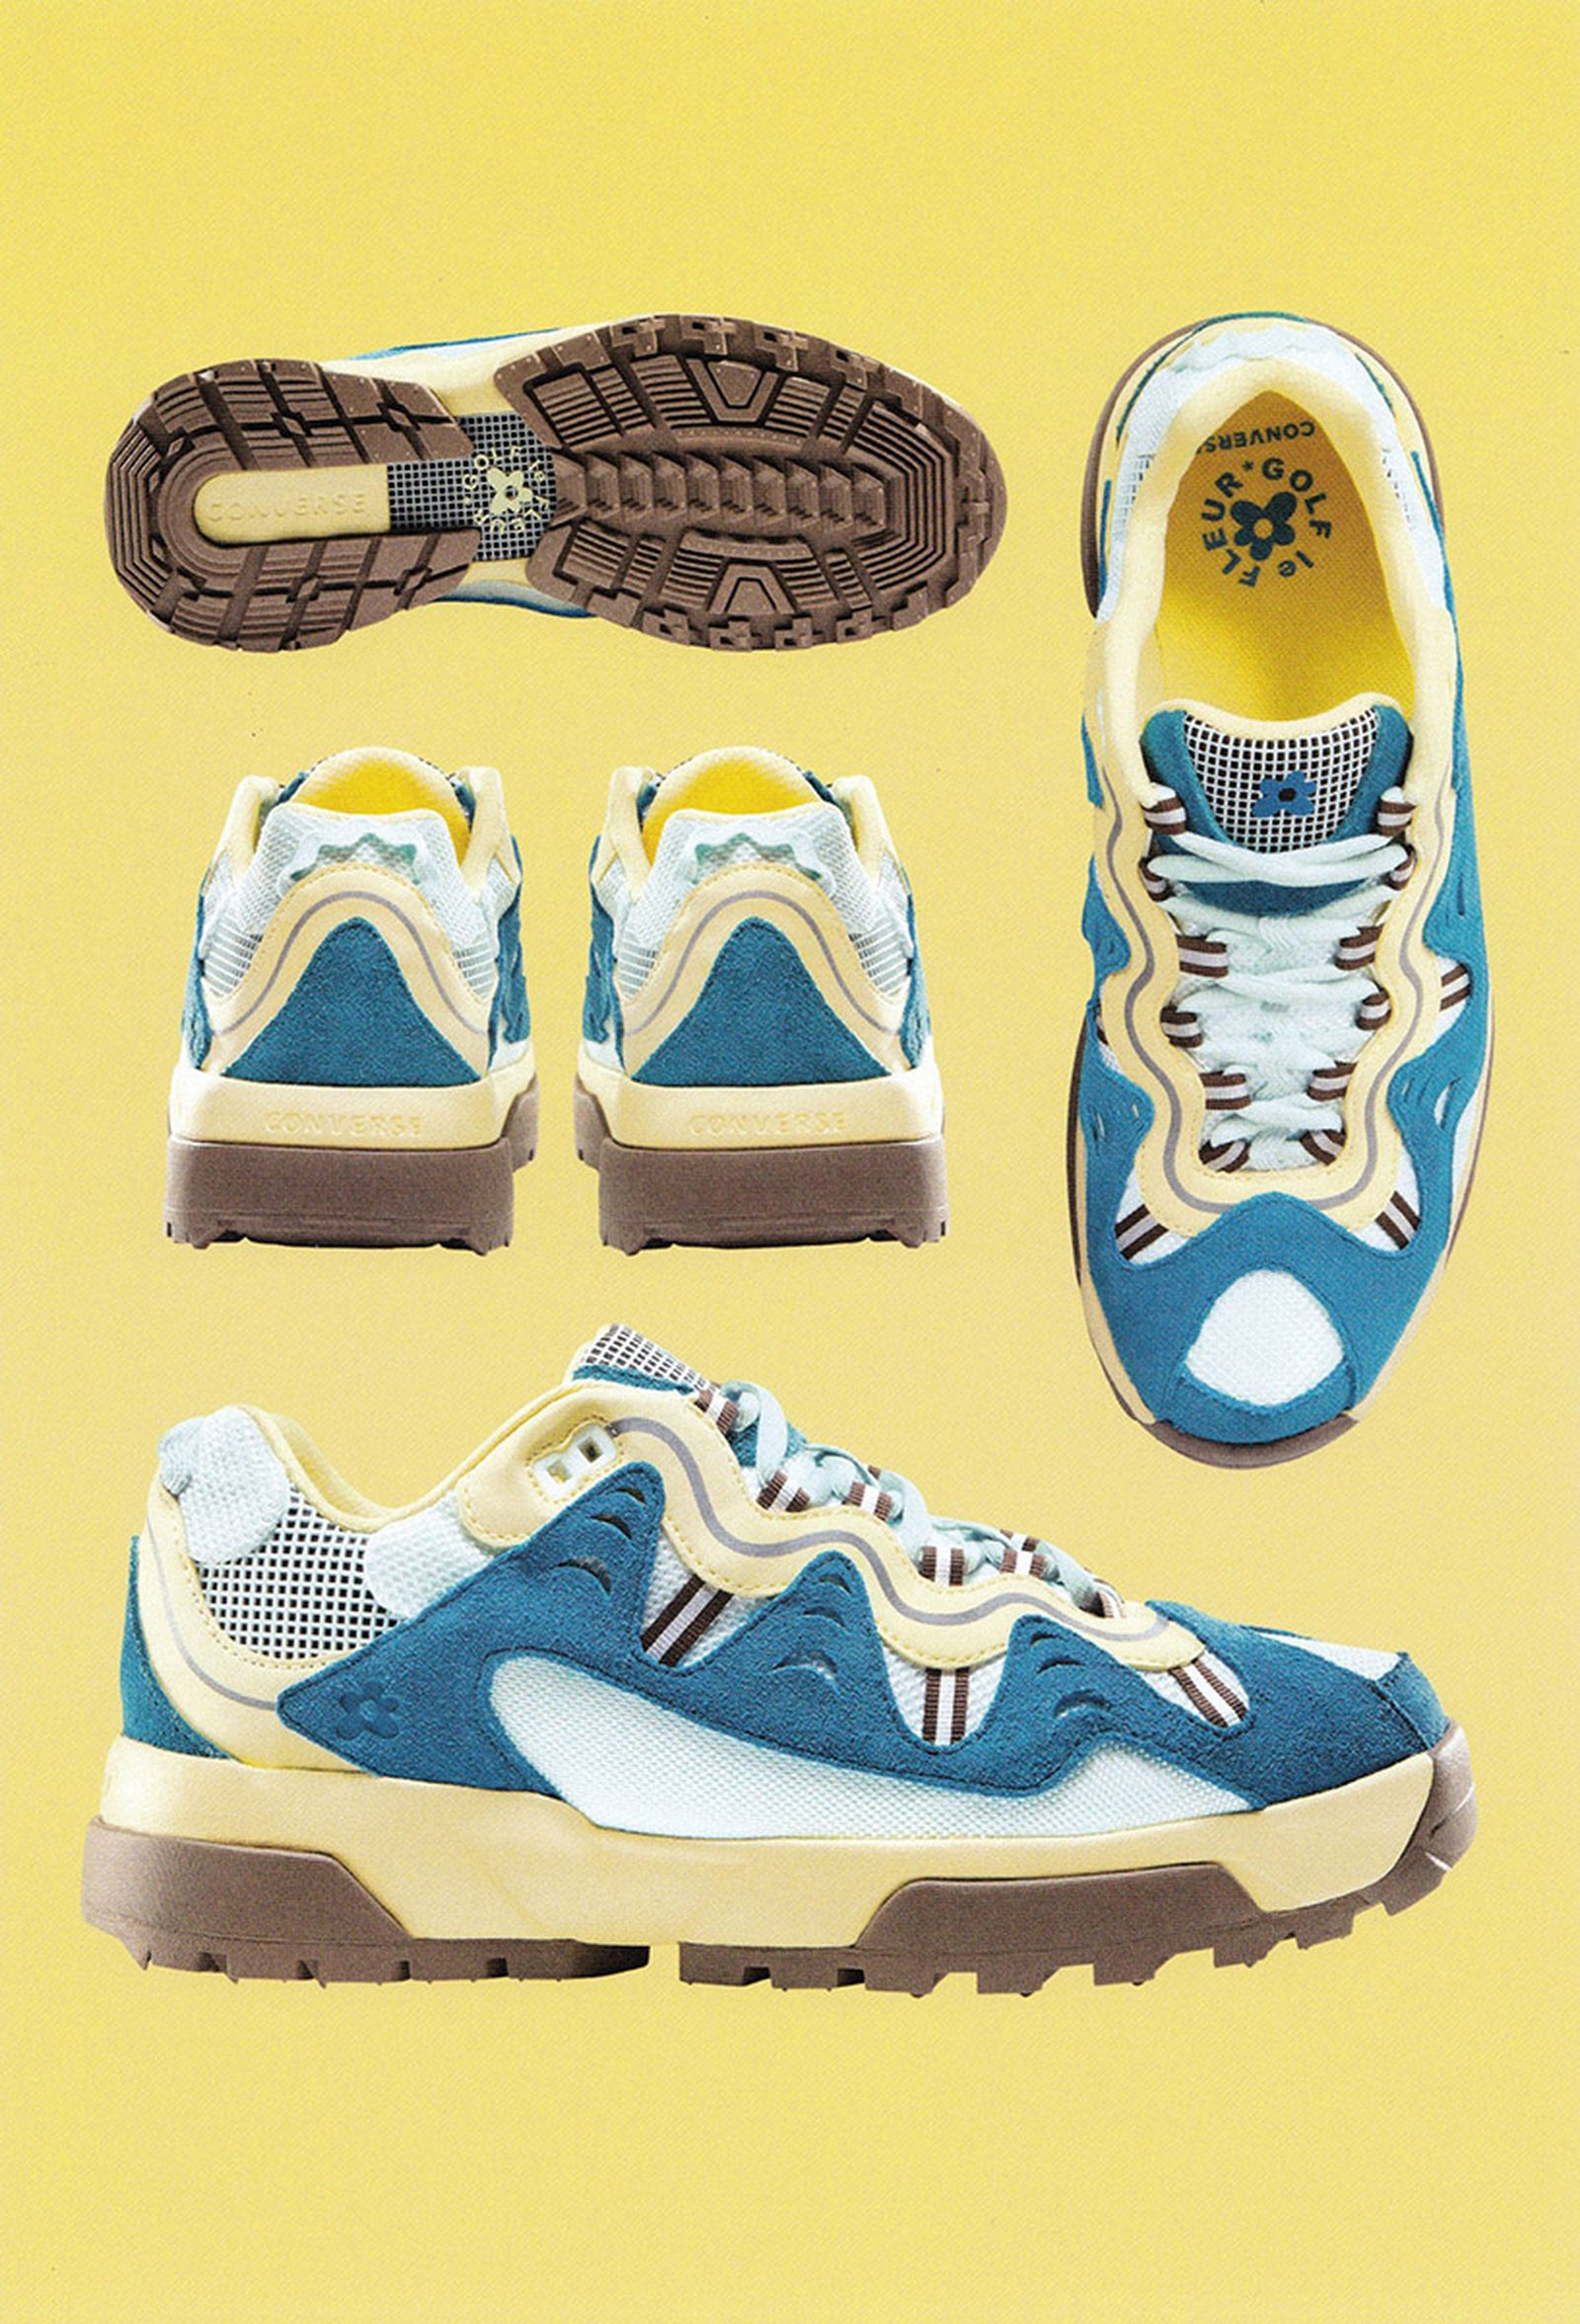 golf-le-fleur-converse-gianno-spring-2020-release-date-price-1-02